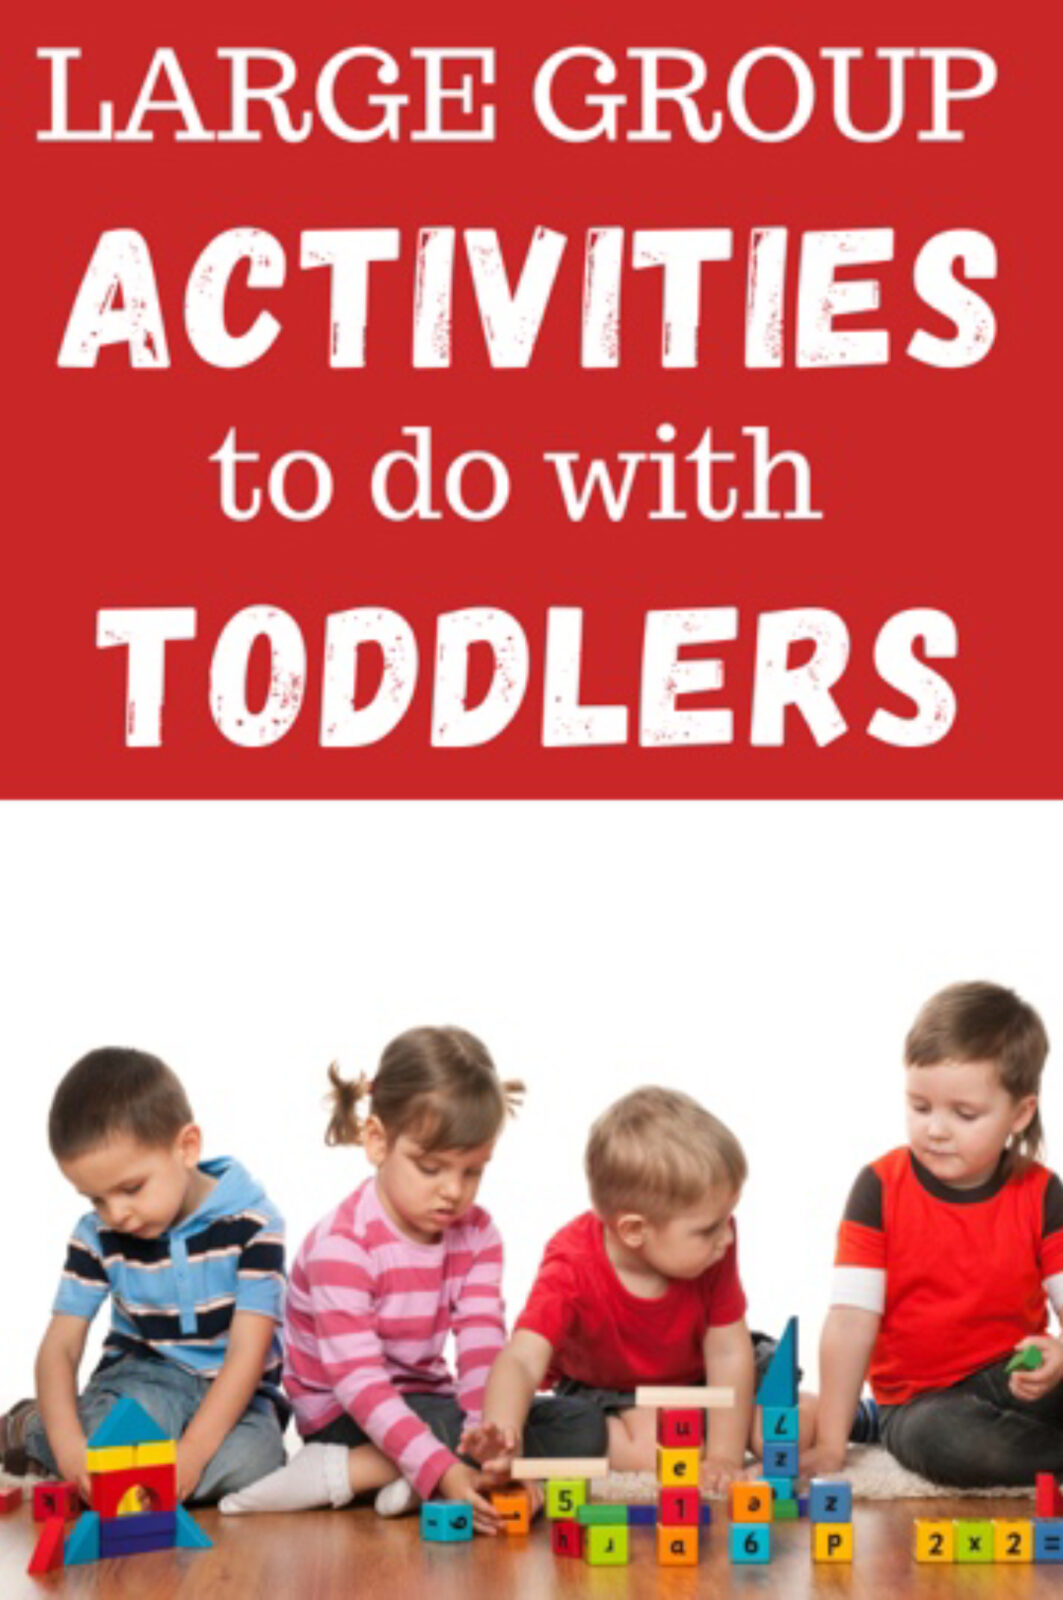 Large group activities for toddlers